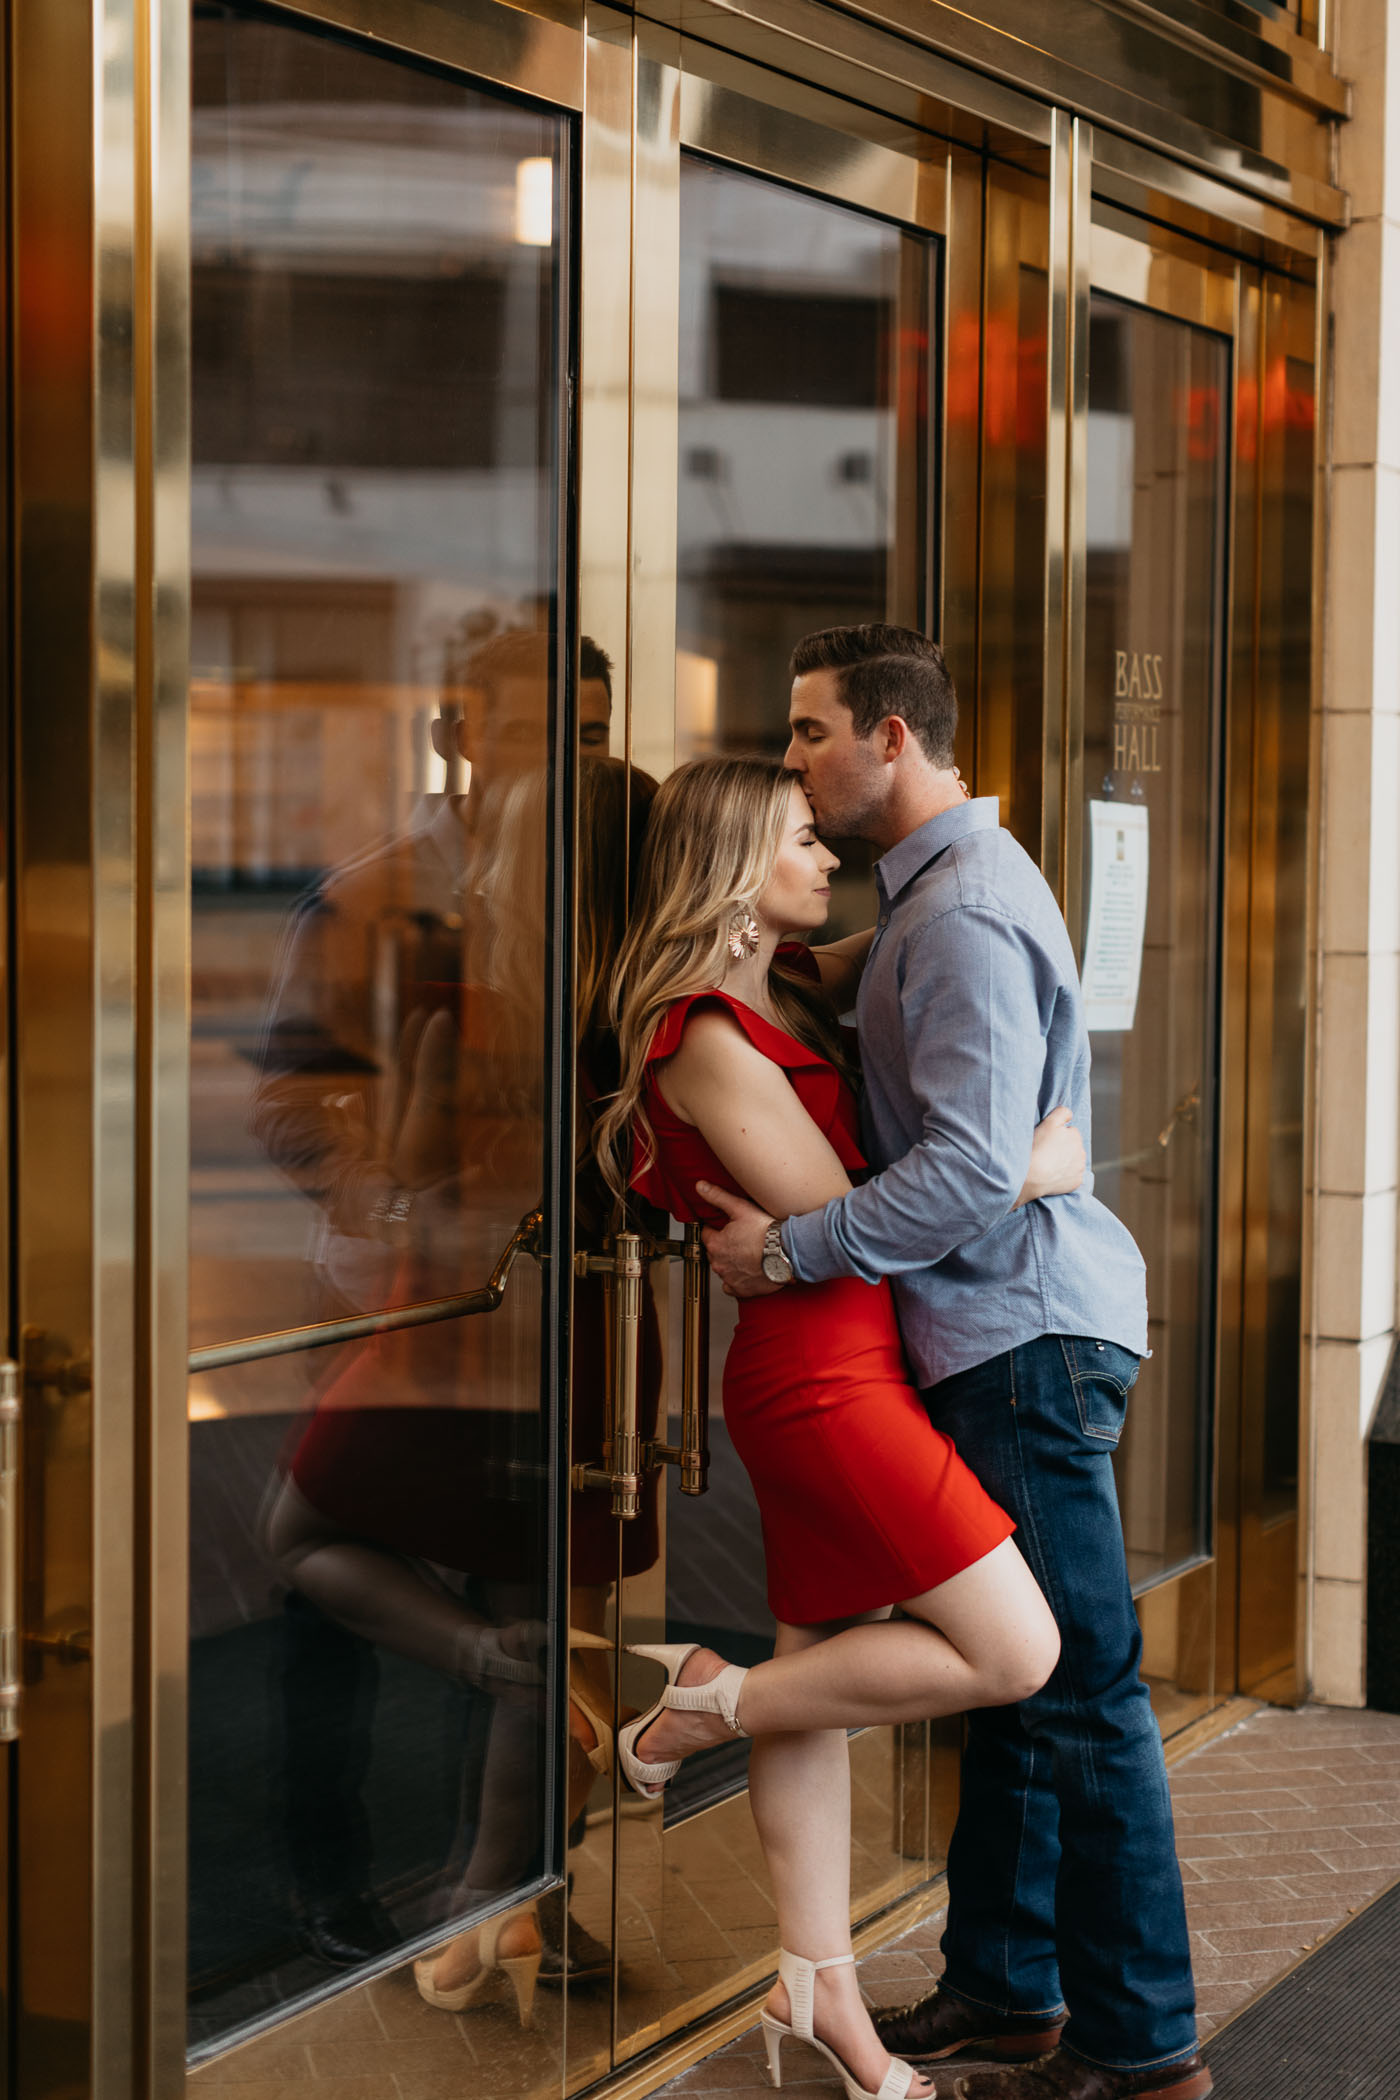 Chic engagement photo in front of bass hall in downtown fort worth